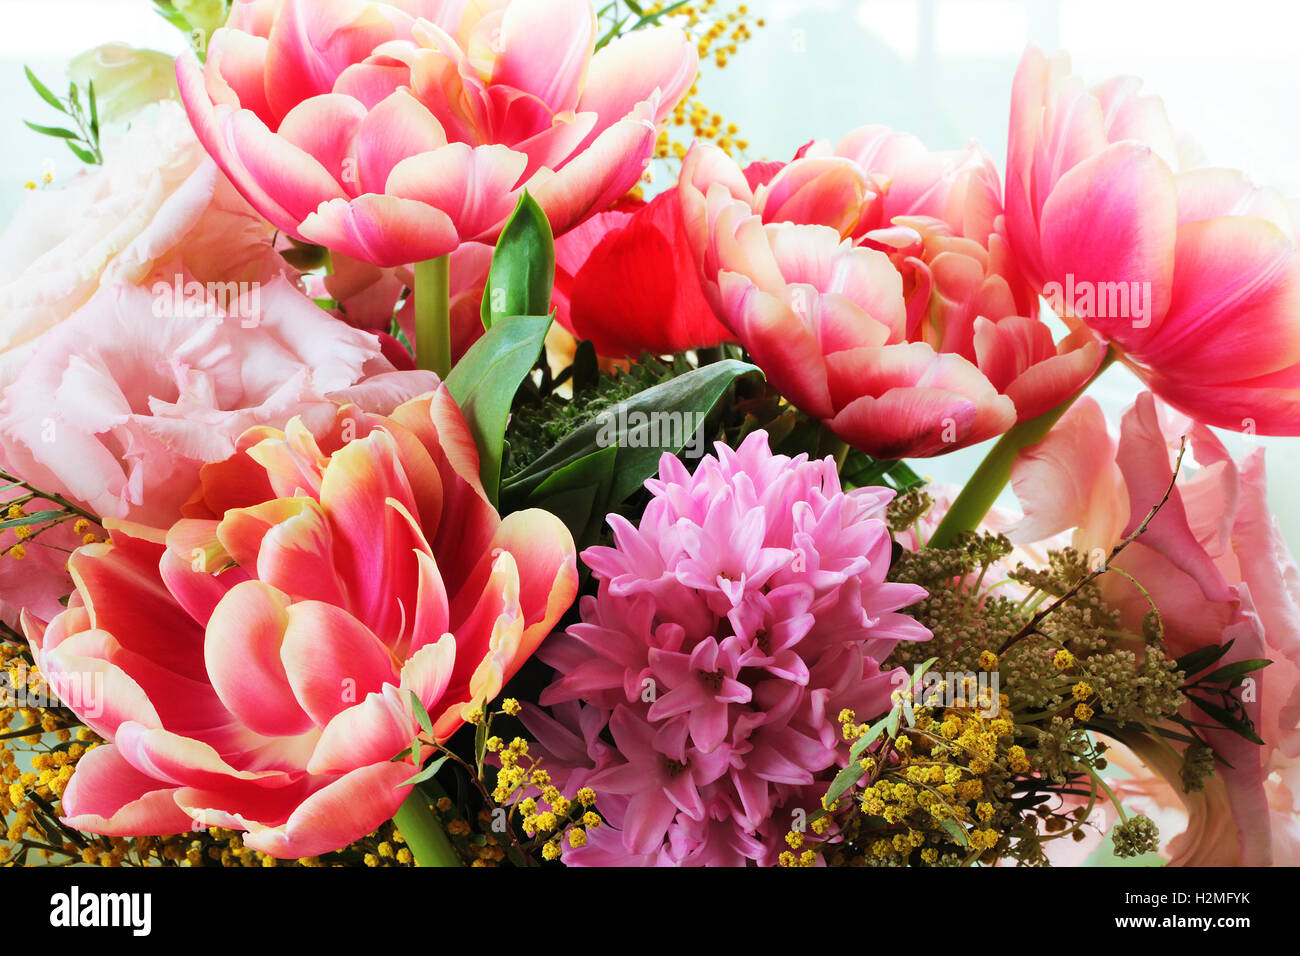 Bouquet of different flowers including tulips and mimosa stock photo bouquet of different flowers including tulips and mimosa izmirmasajfo